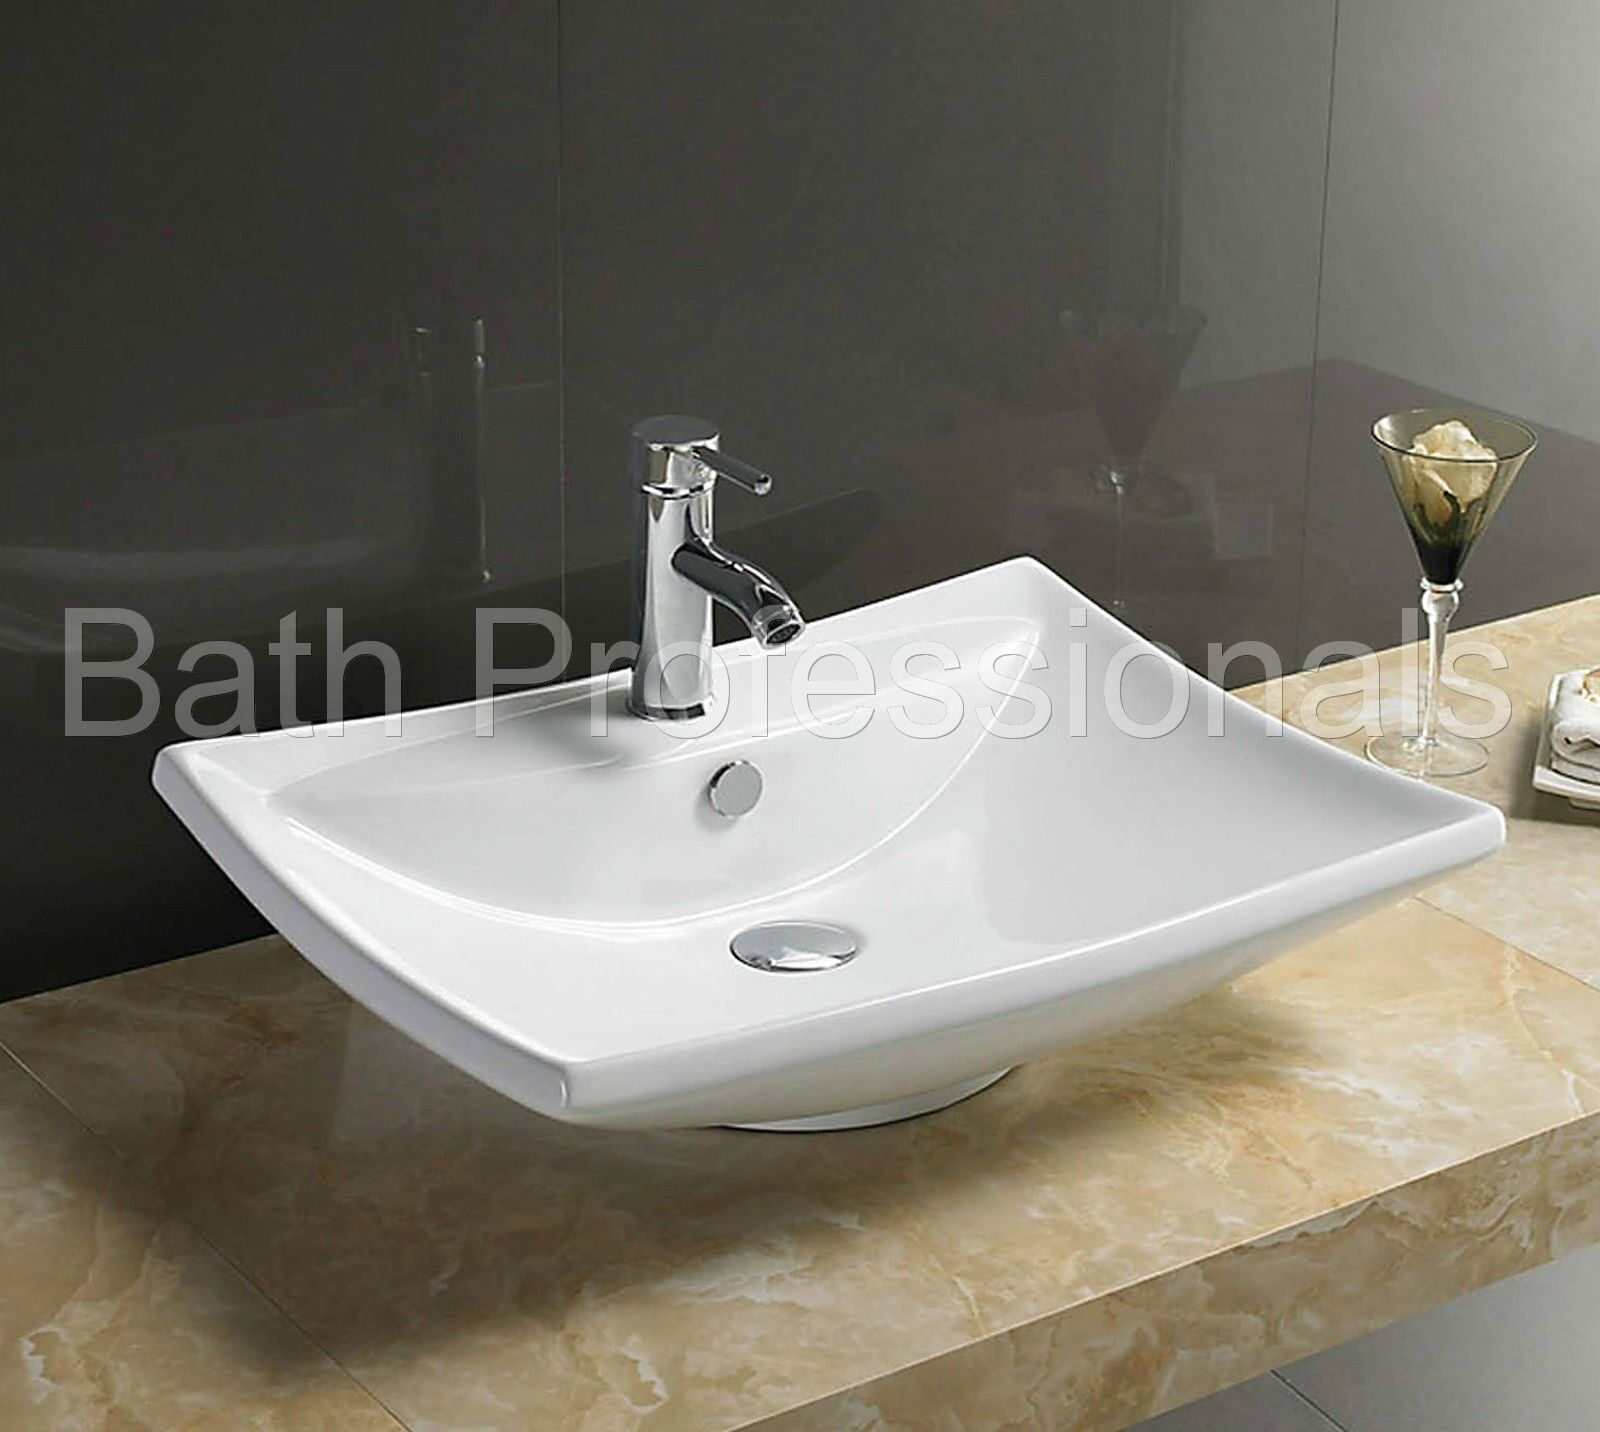 sink basins bathroom basin sink countertop ceramic bathroom cloakroom wall hung 14415